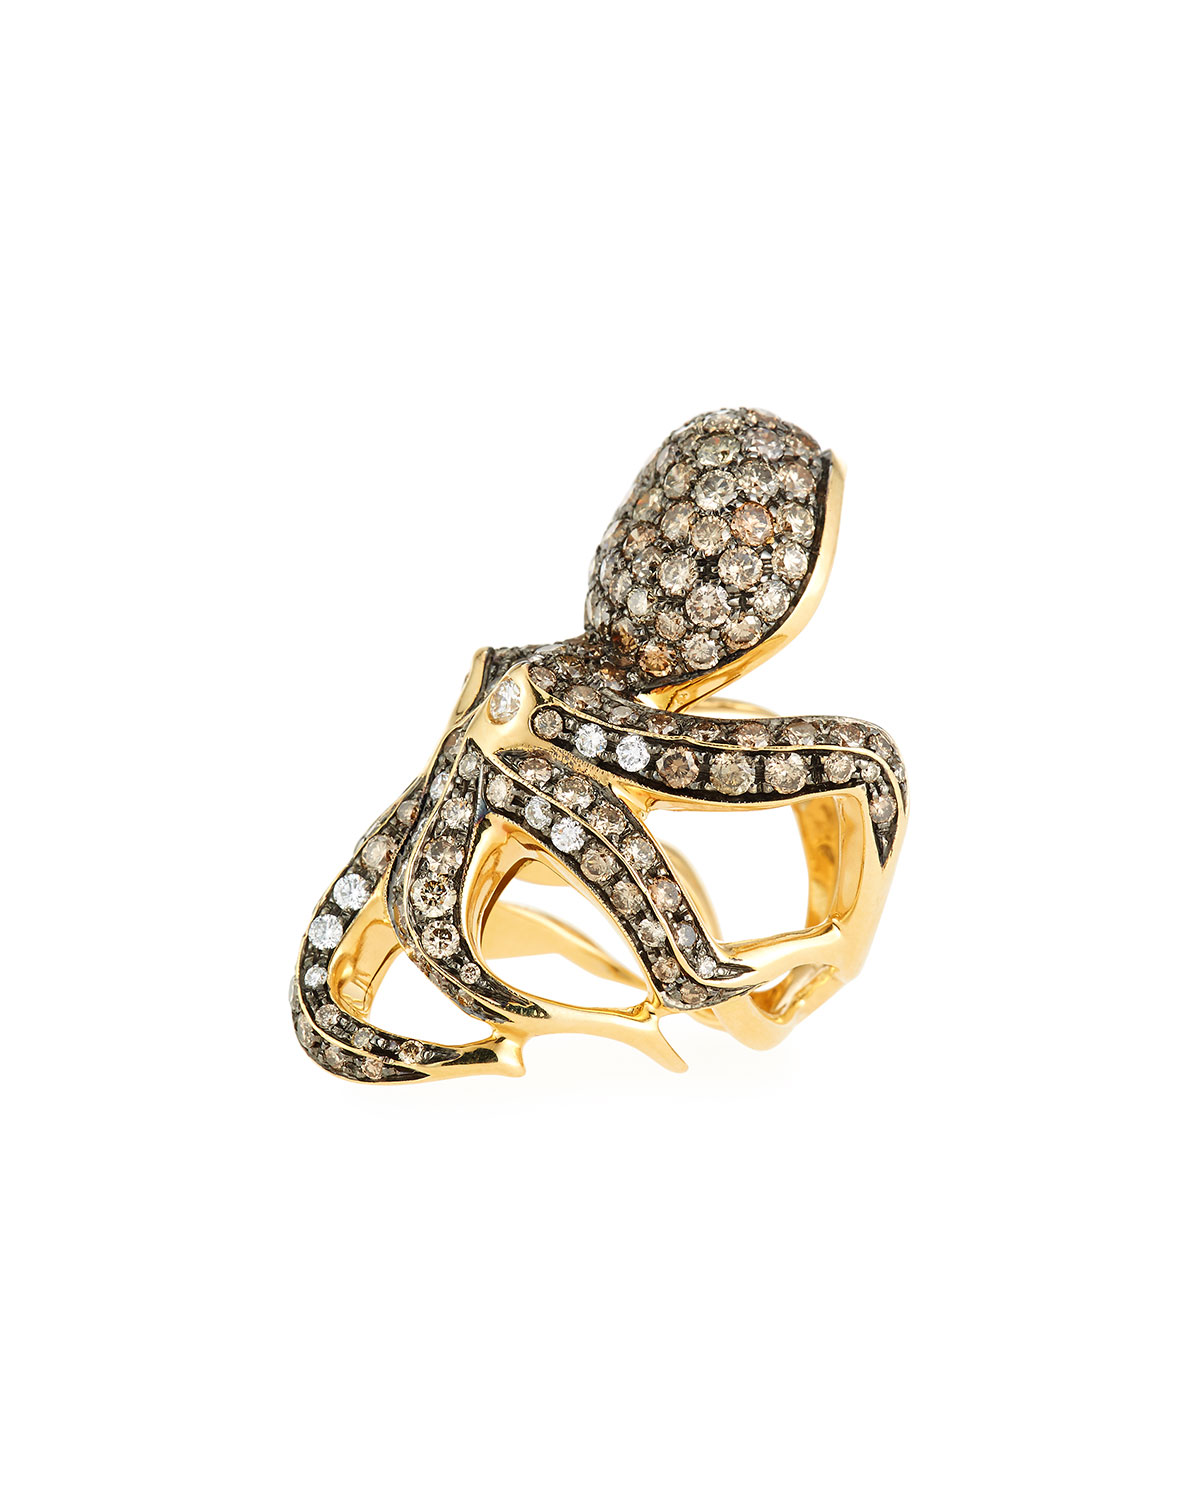 Roberto Coin 18k Cognac Diamond Octopus Ring, Size 6.5